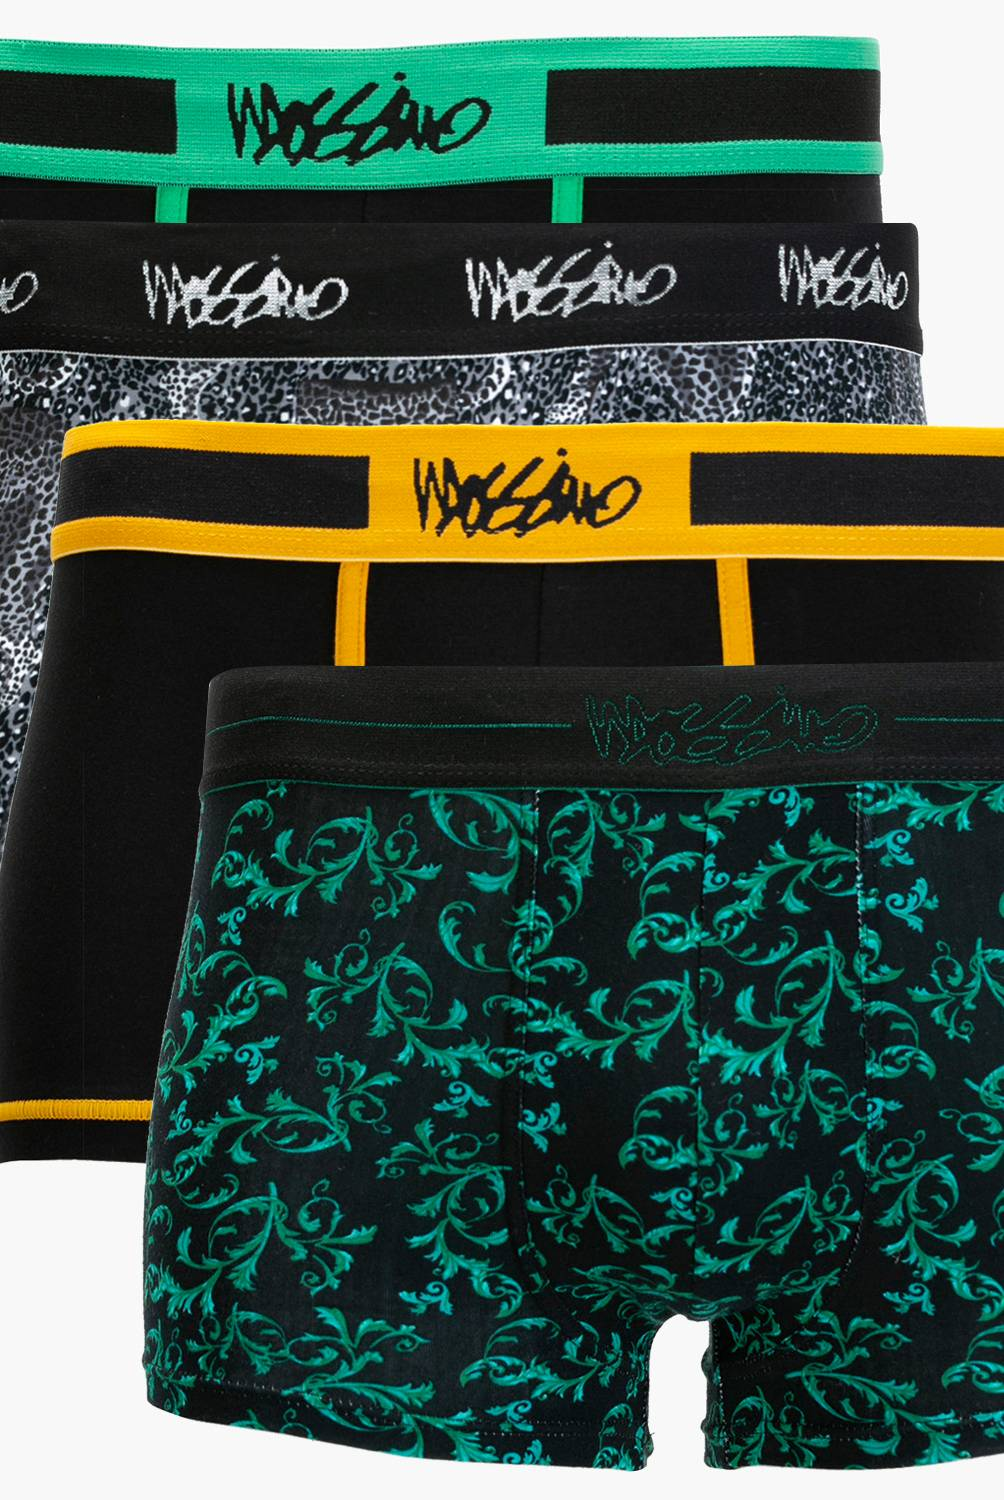 MOSSIMO - Pack 4 Boxers Algodón Hombre